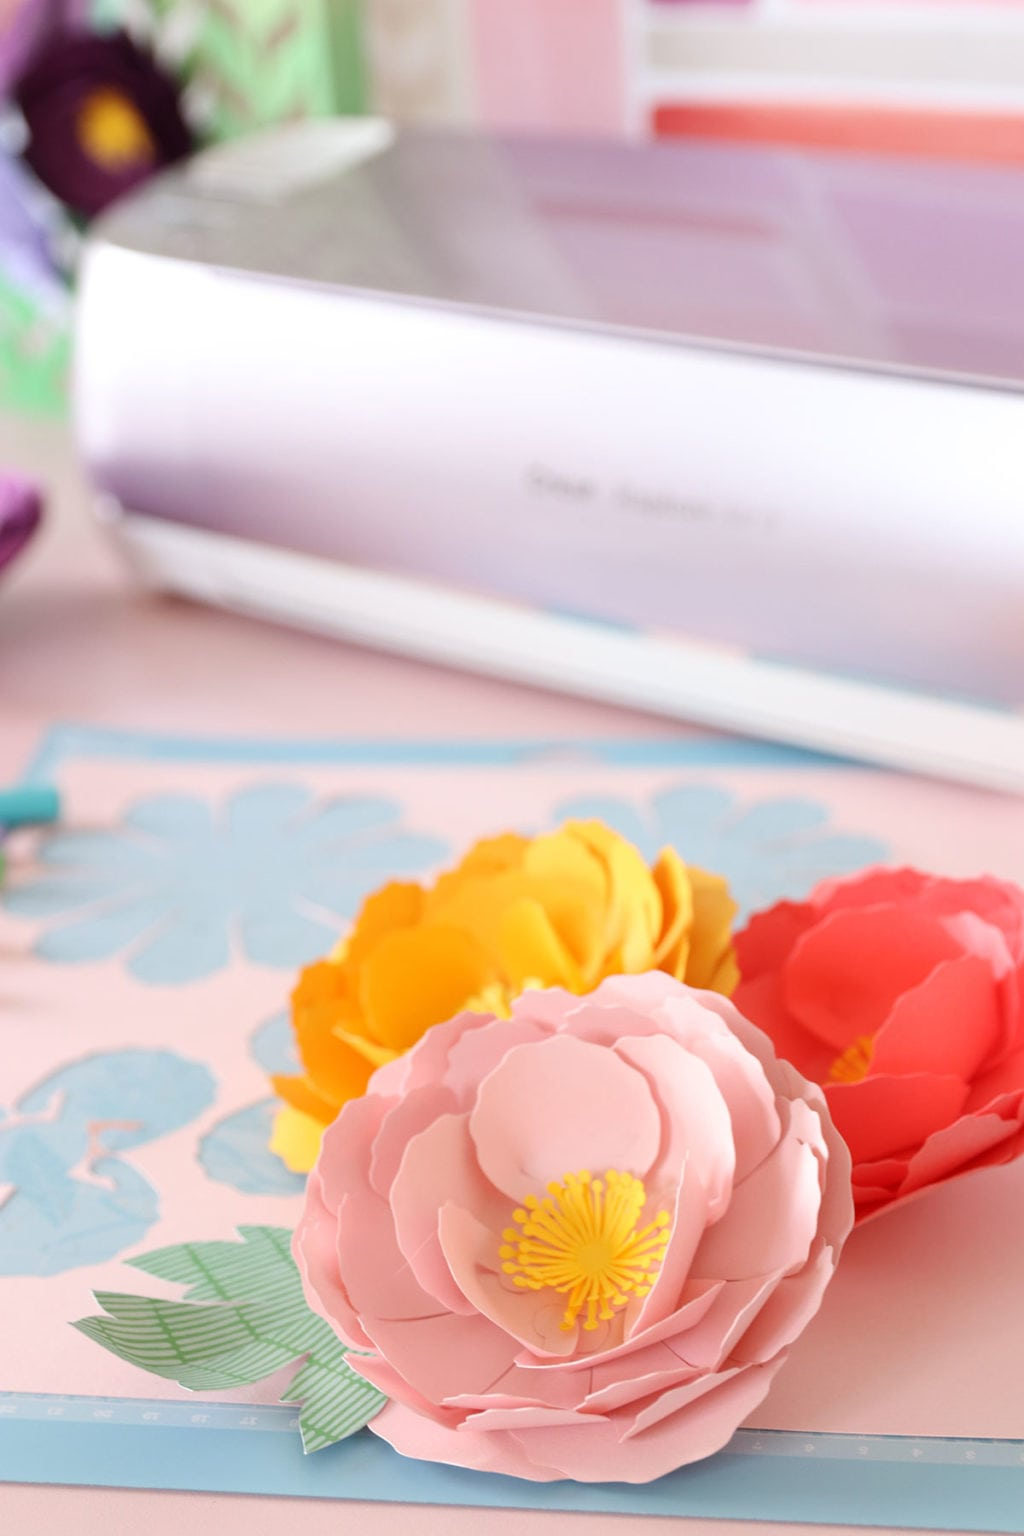 The new Cricut Wisteria bundle available exclusively at JOANN is the perfect machine for creating perfect paper flowers. I'll show you how.